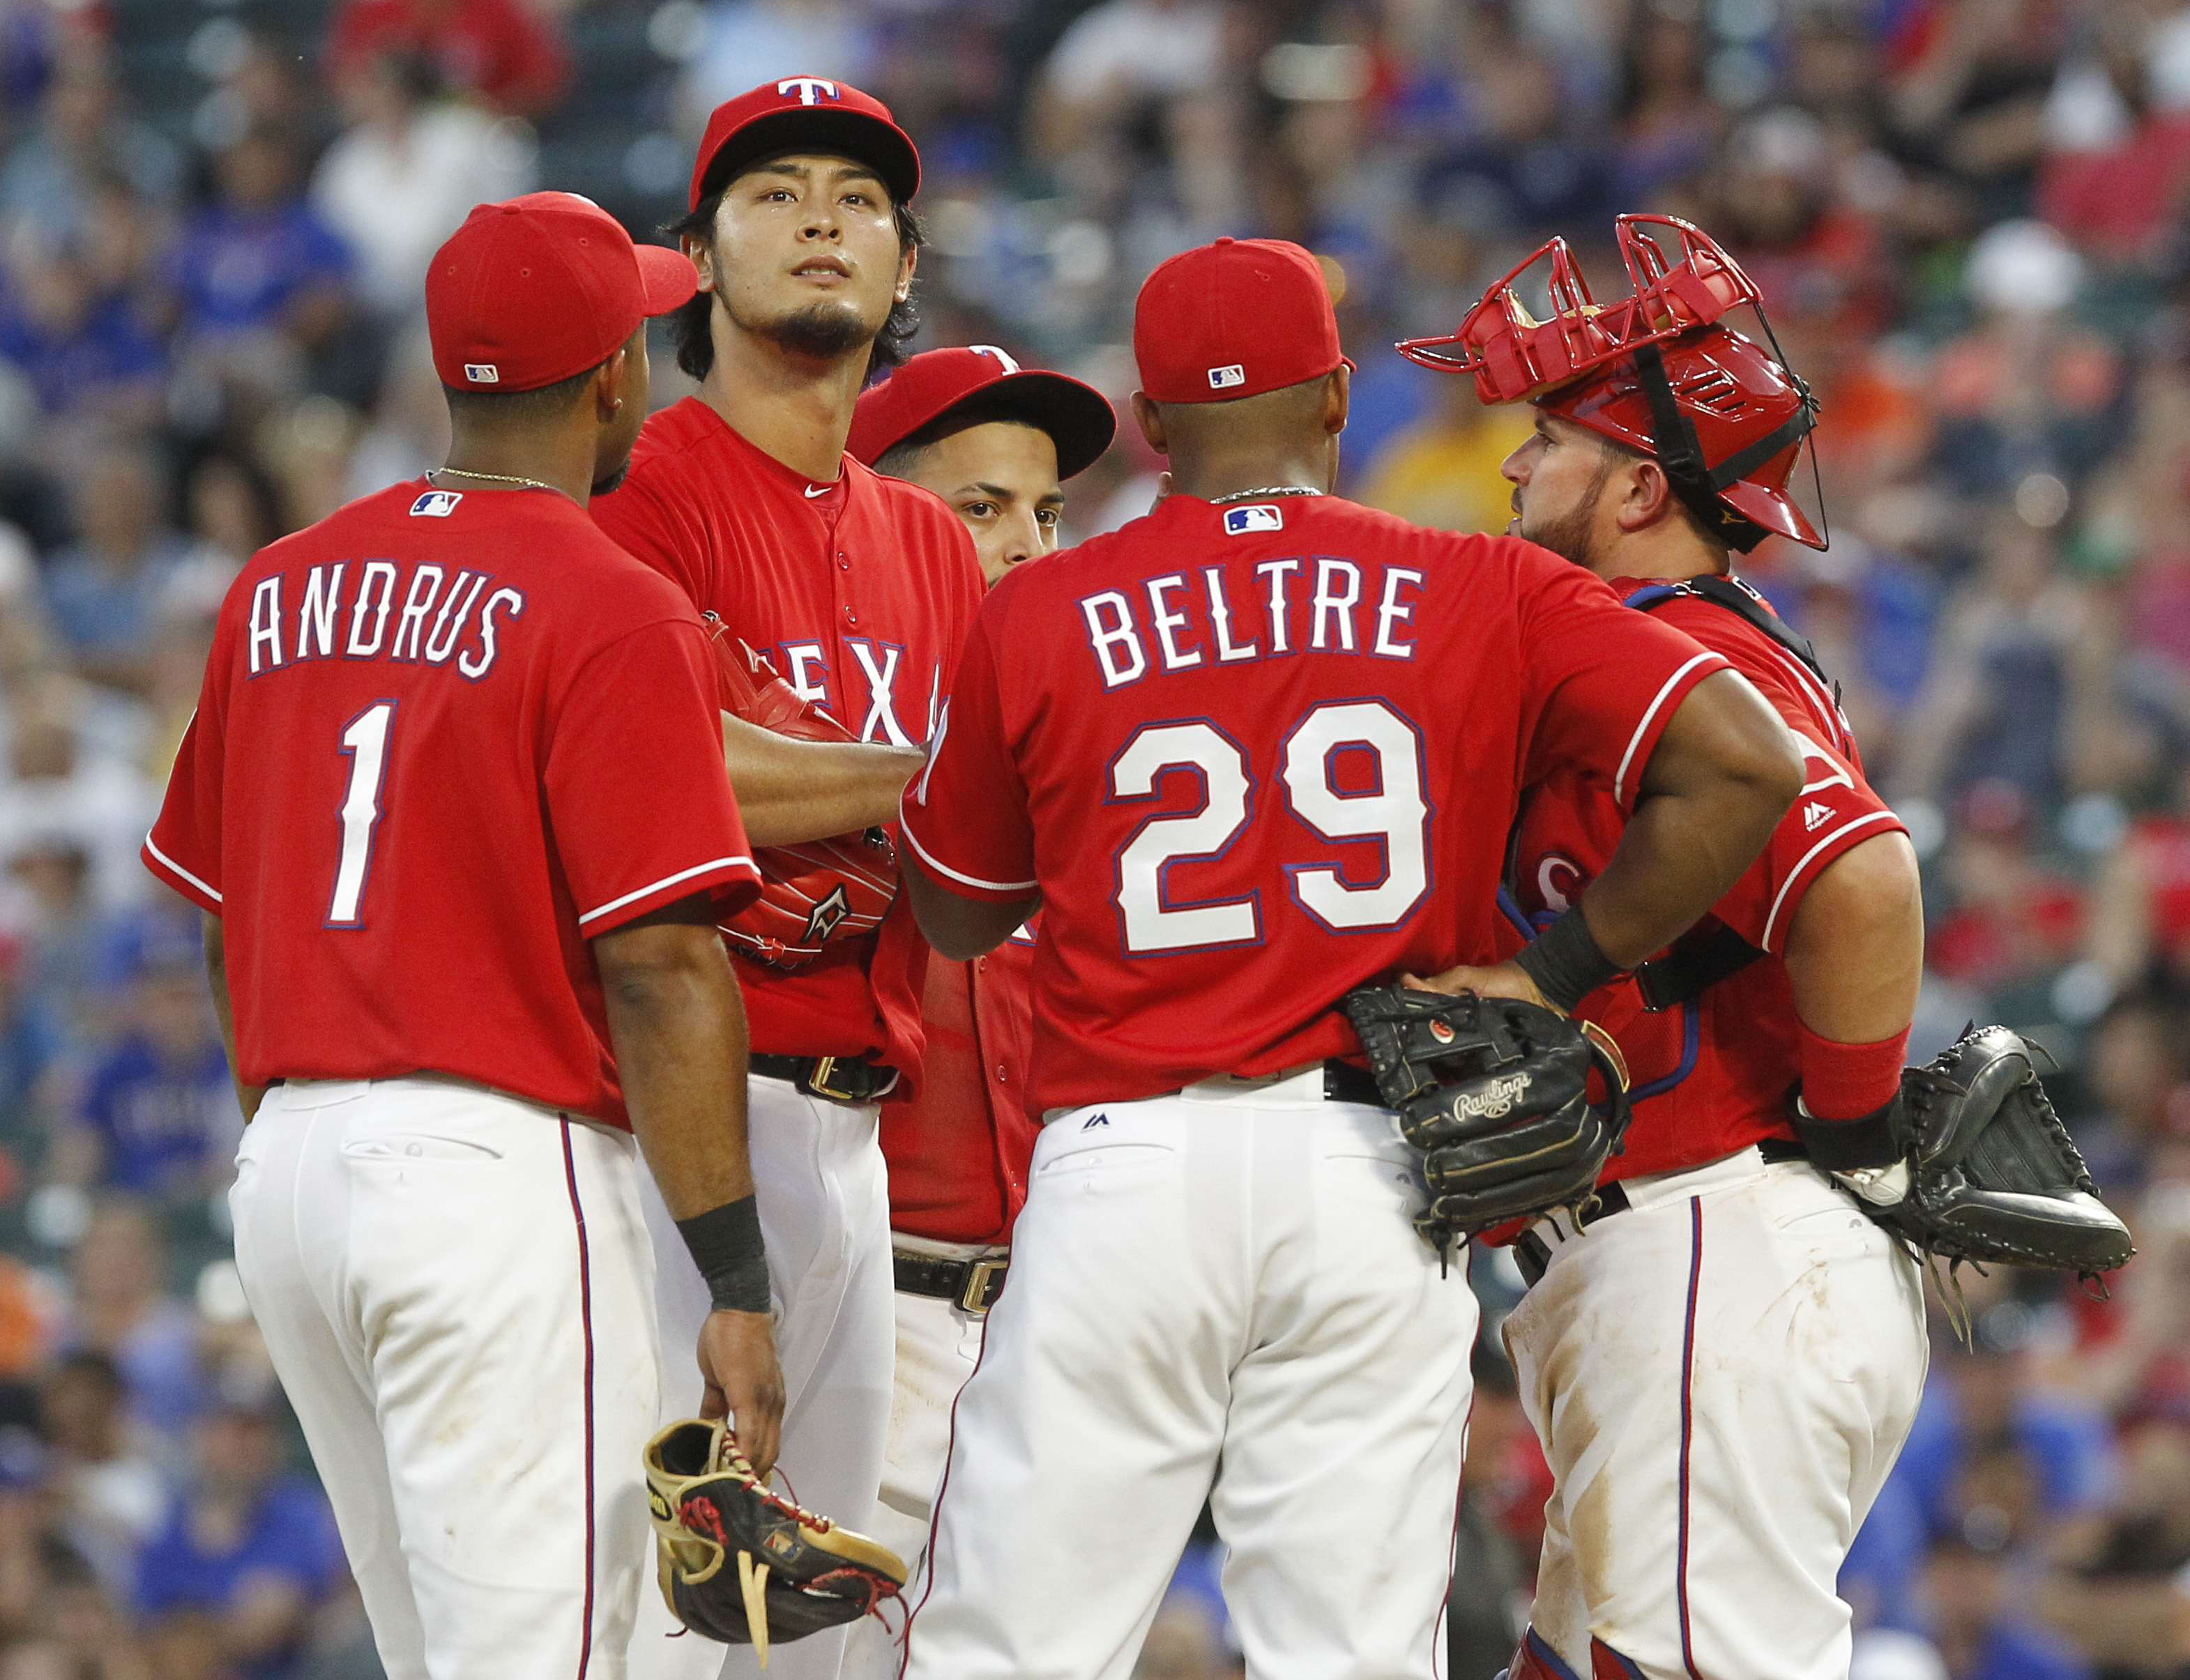 Texas Rangers pitcher Yu Darvish, second from left, meets with teammates on the mound during the fifth inning of a baseball game against the Houston Astros on Wednesday, June 8, 2016, in Arlington, Texas. Darvish did not return to the game for the sixth i